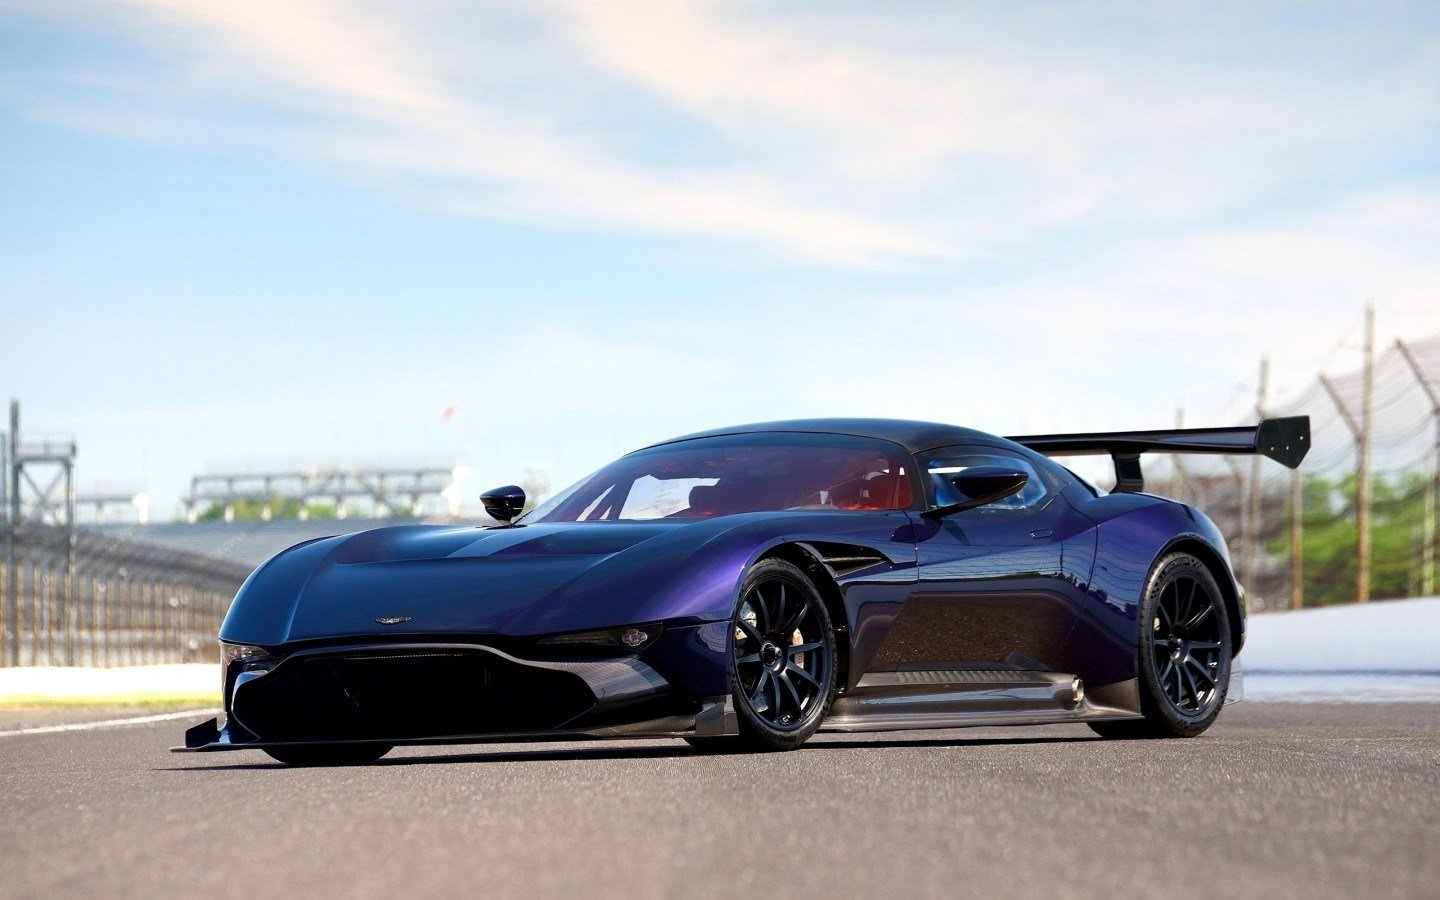 Latest 2016 Aston Martin Vulcan Wallpaper Hd Car Wallpapers Free Download